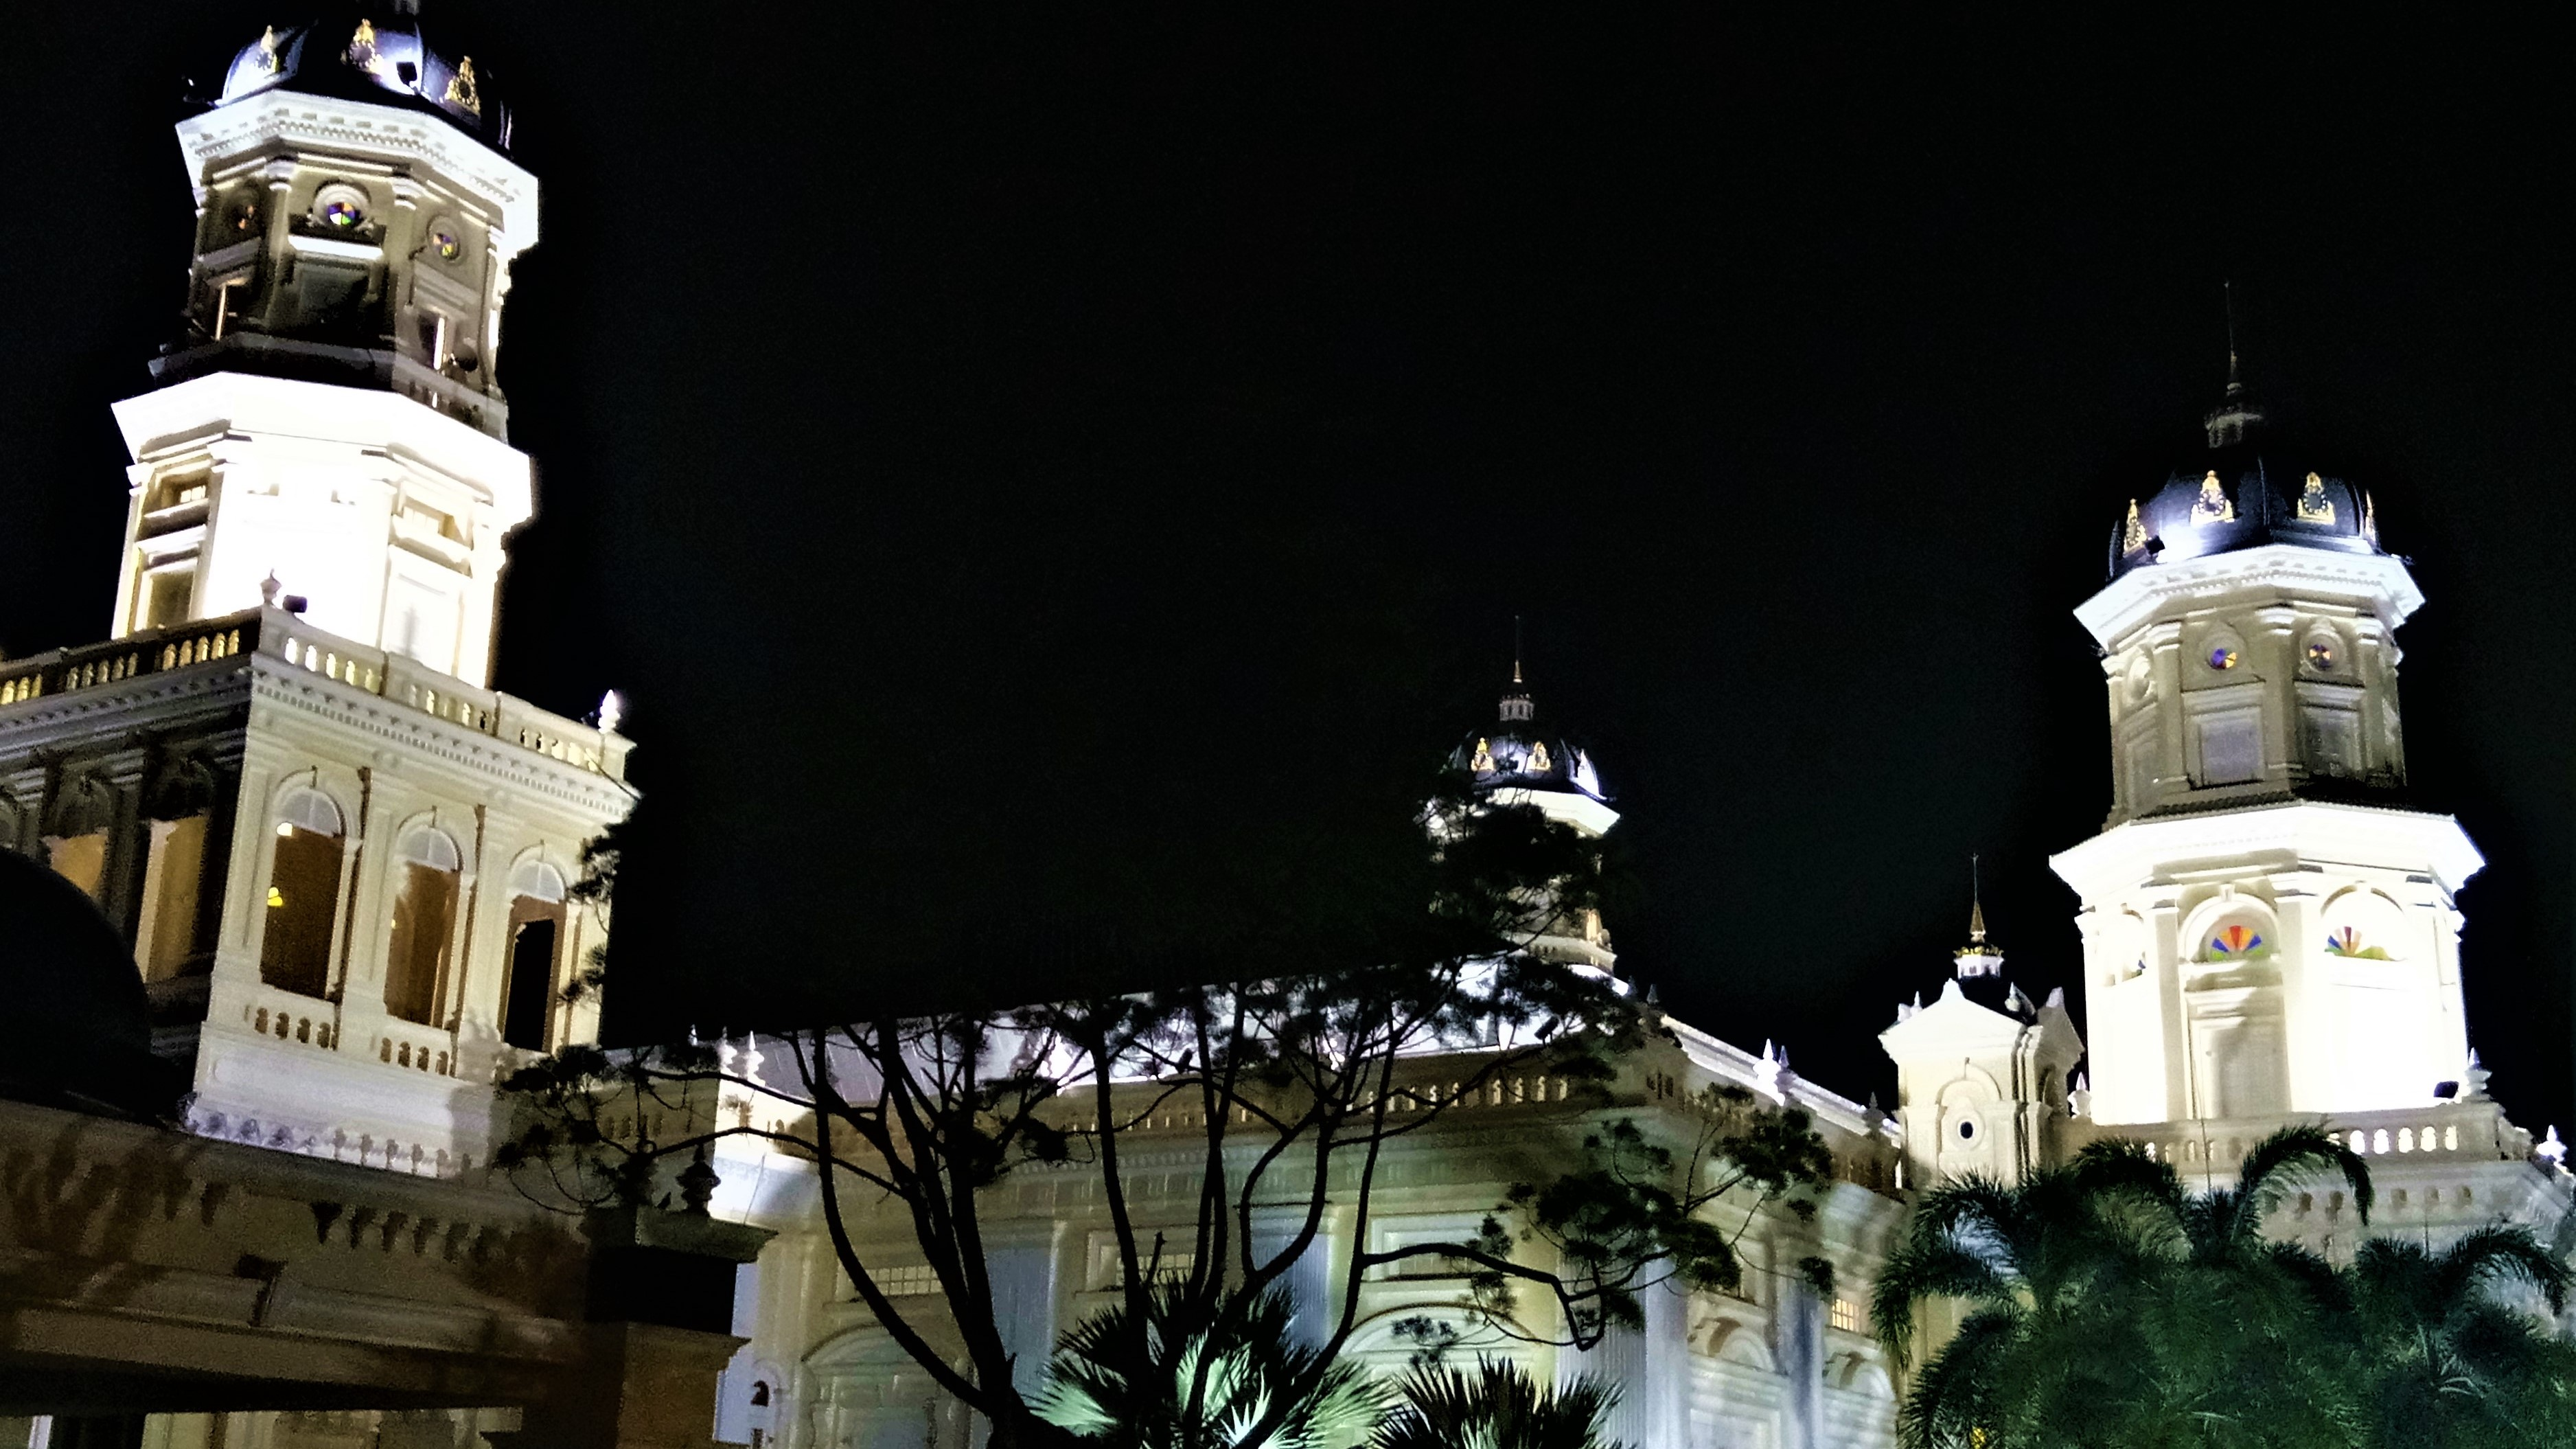 JB At Night : The Sultan Abu Bakar State Mosque